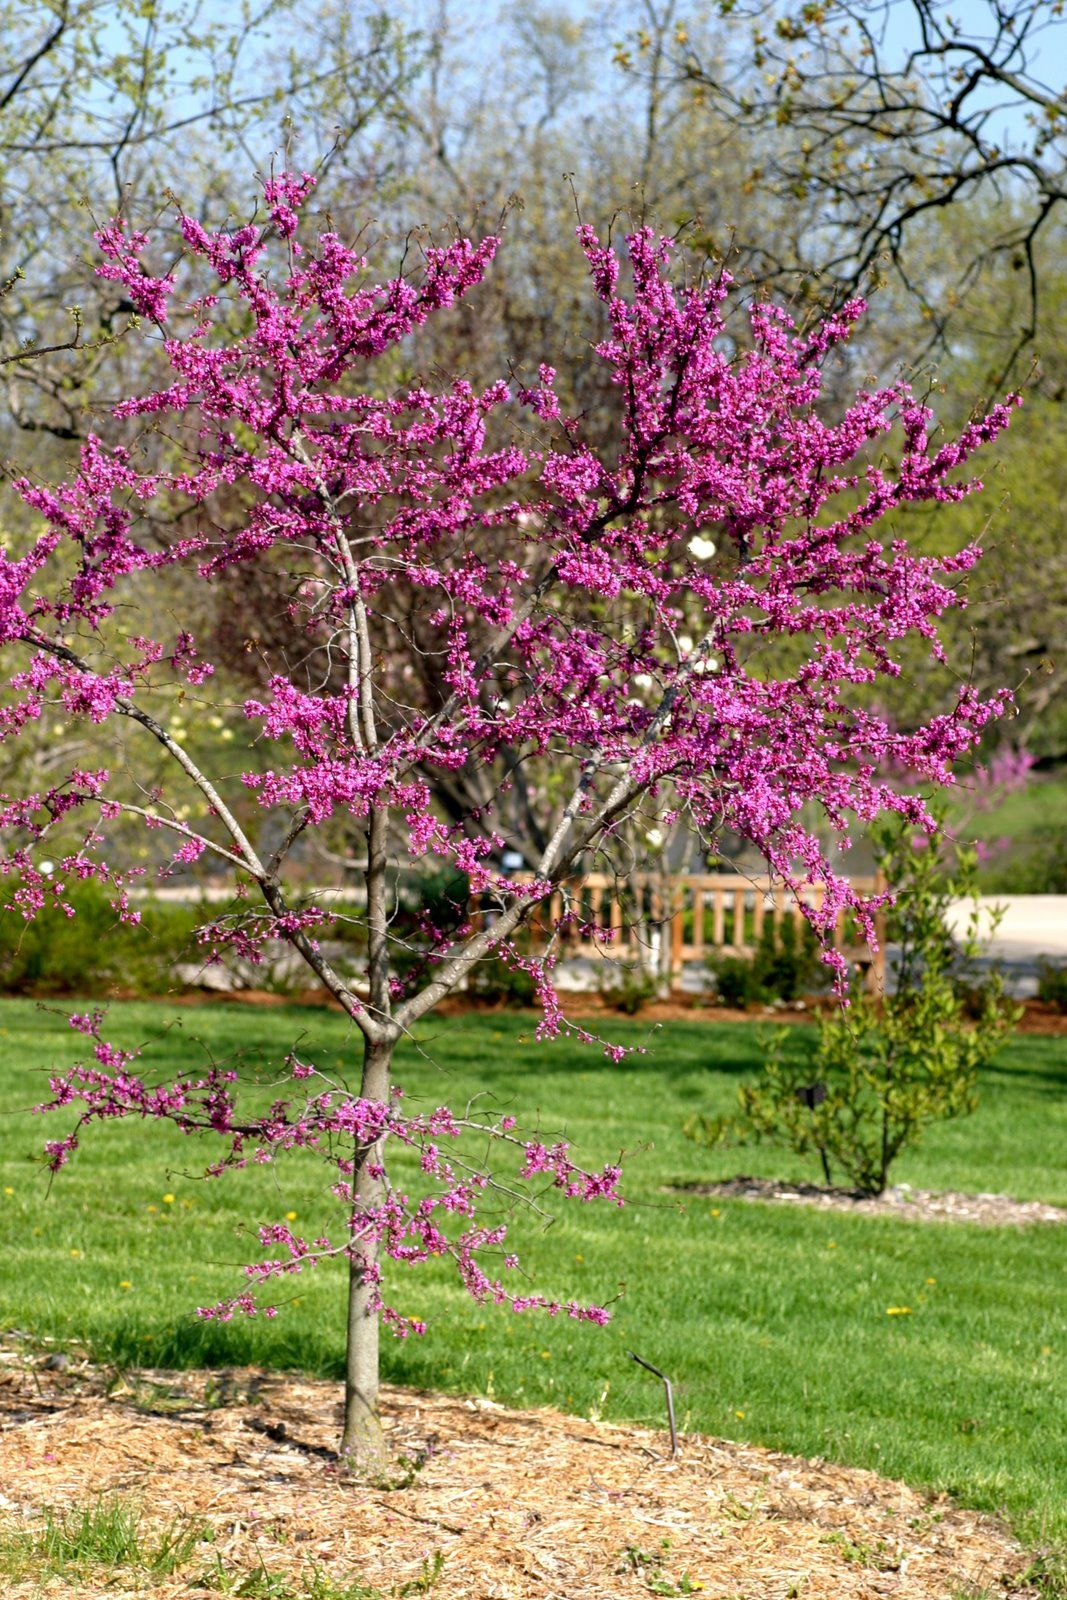 Oklahoma Redbud tree - I love this tree, it is beautiful when it blooms.